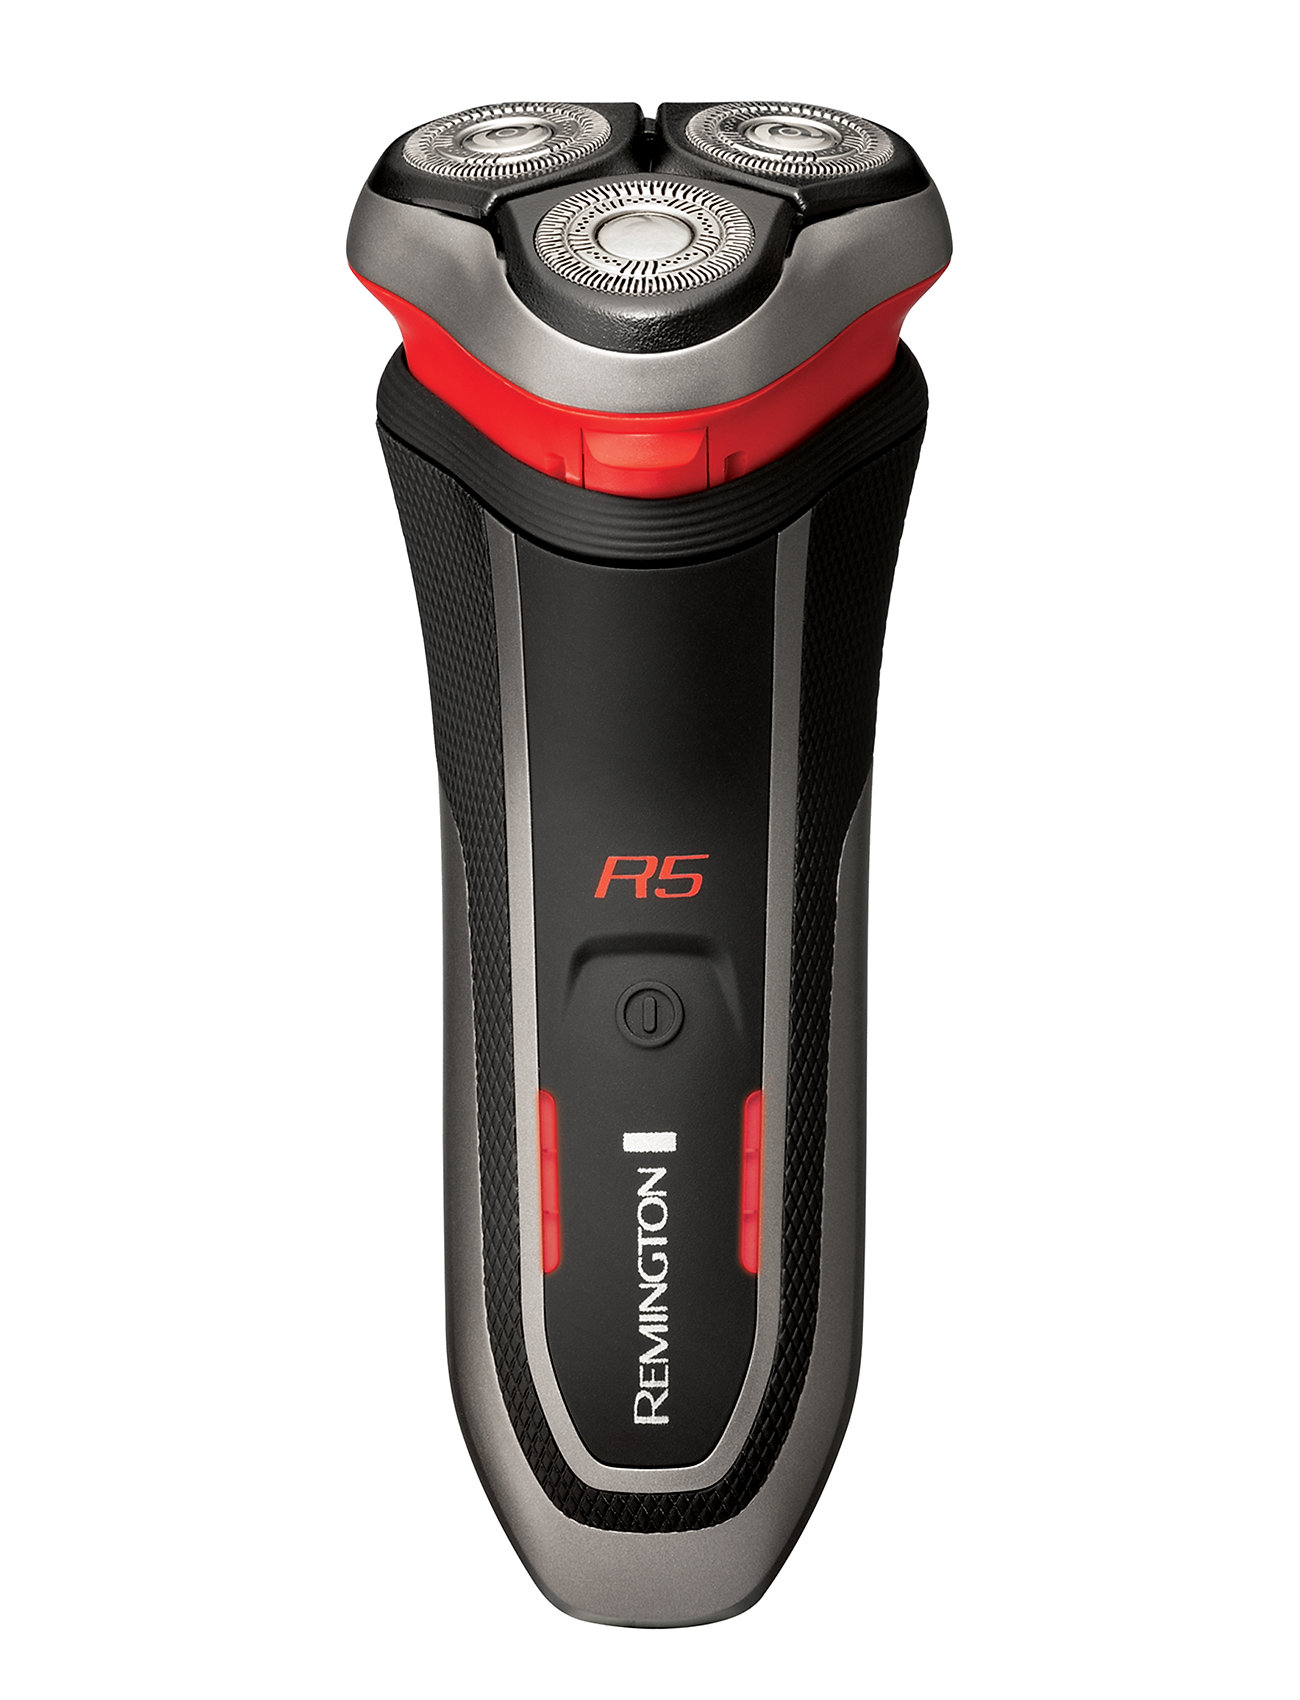 Remington R5000 R5 Style Series Rotary Shaver - NO COLOR